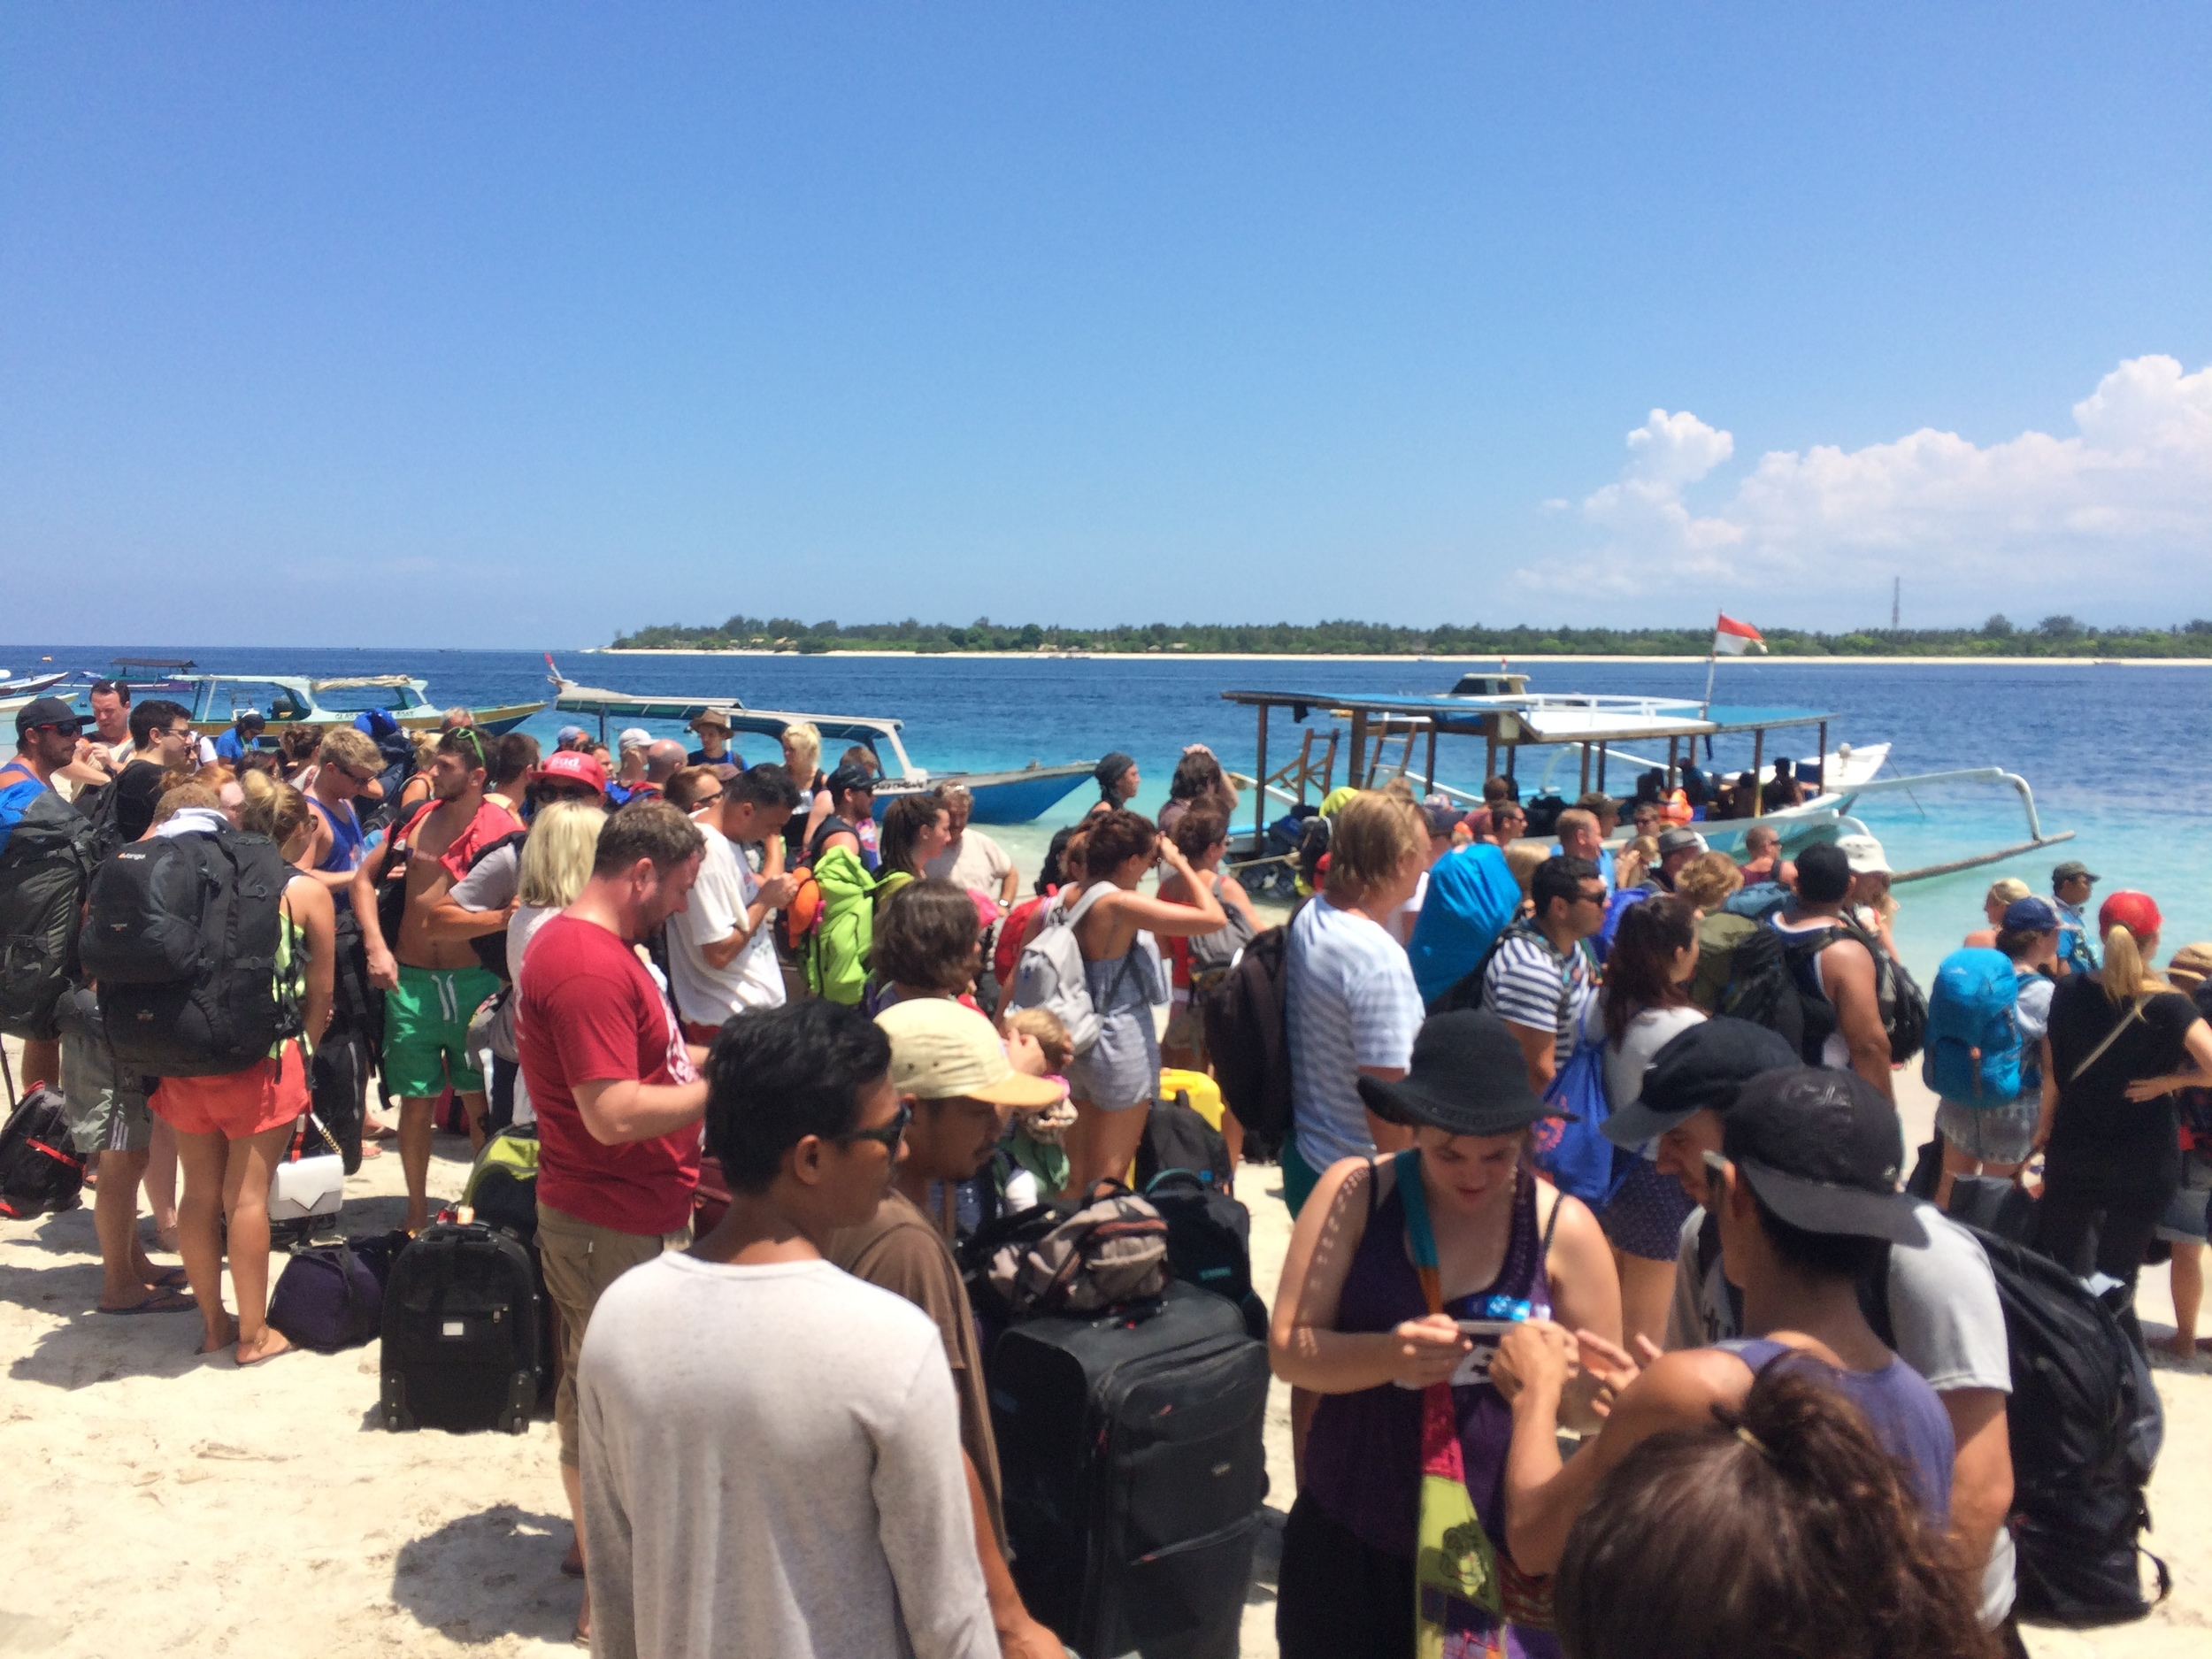 Arriving at Gili T!